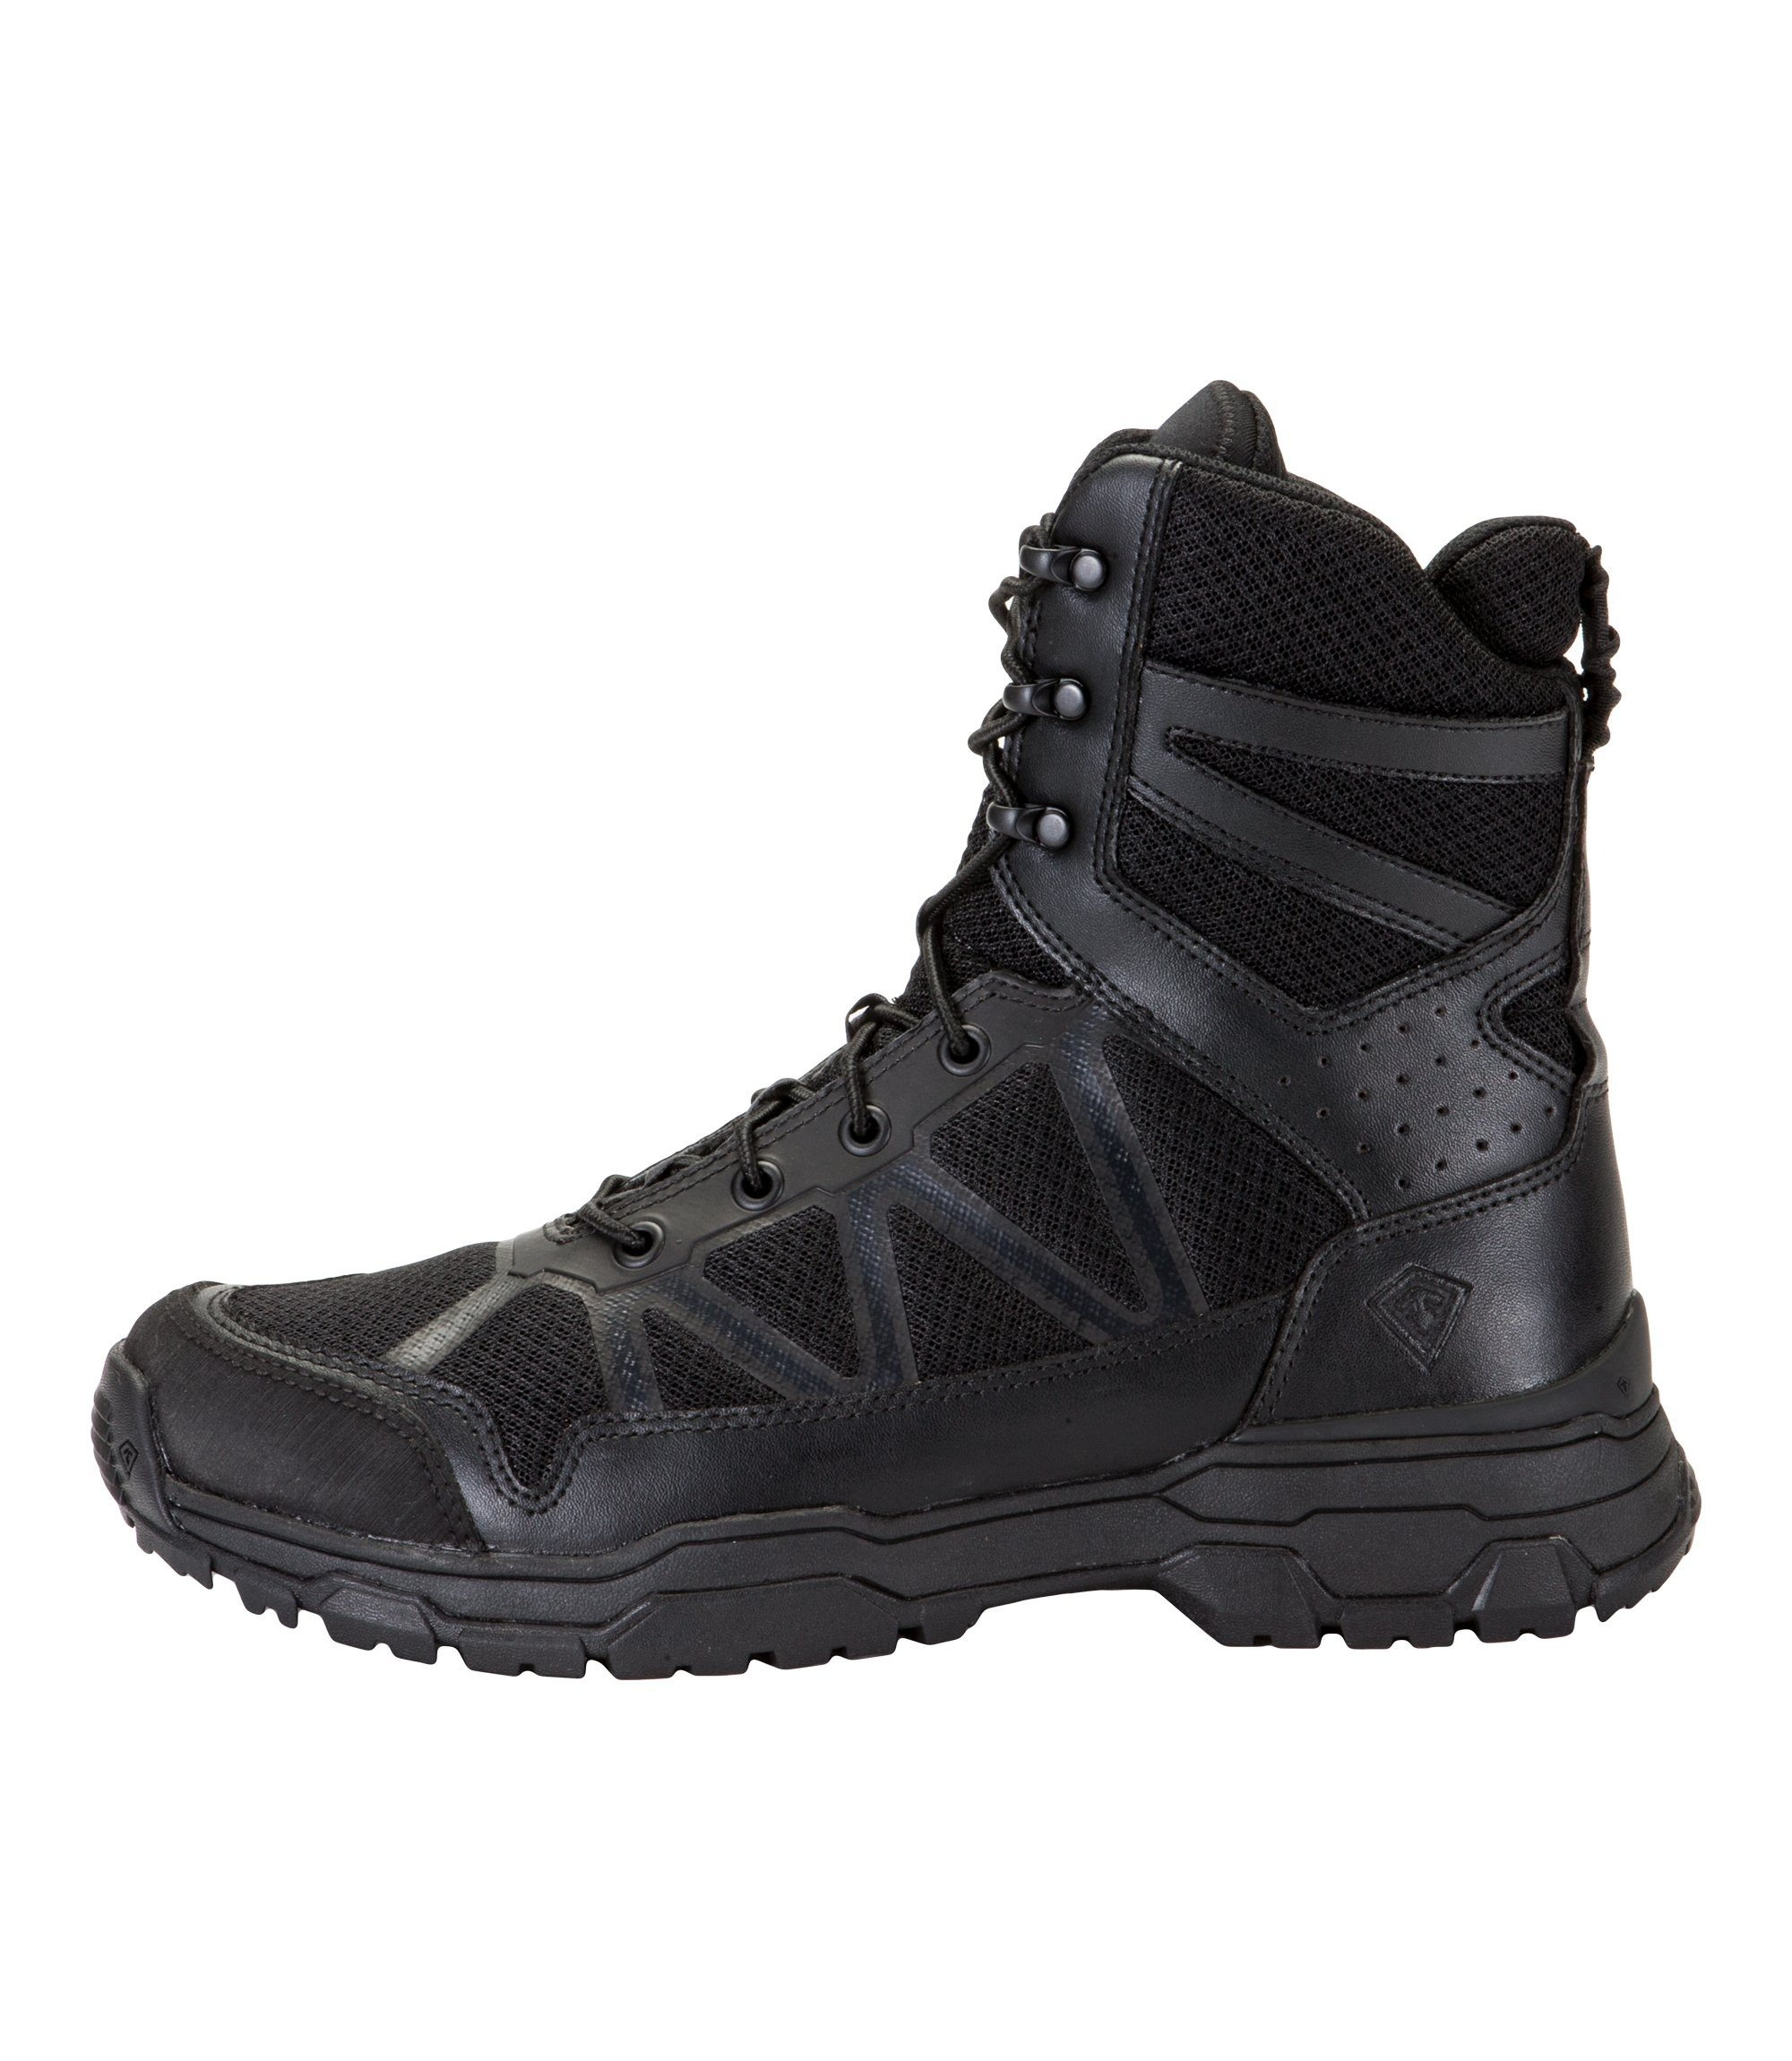 """Image of Buty first tactical m's 7"""" operator boot black 165010 - kolor black (019), rozmiar (a) 41 (u1t/165010 019 7 - 41)"""